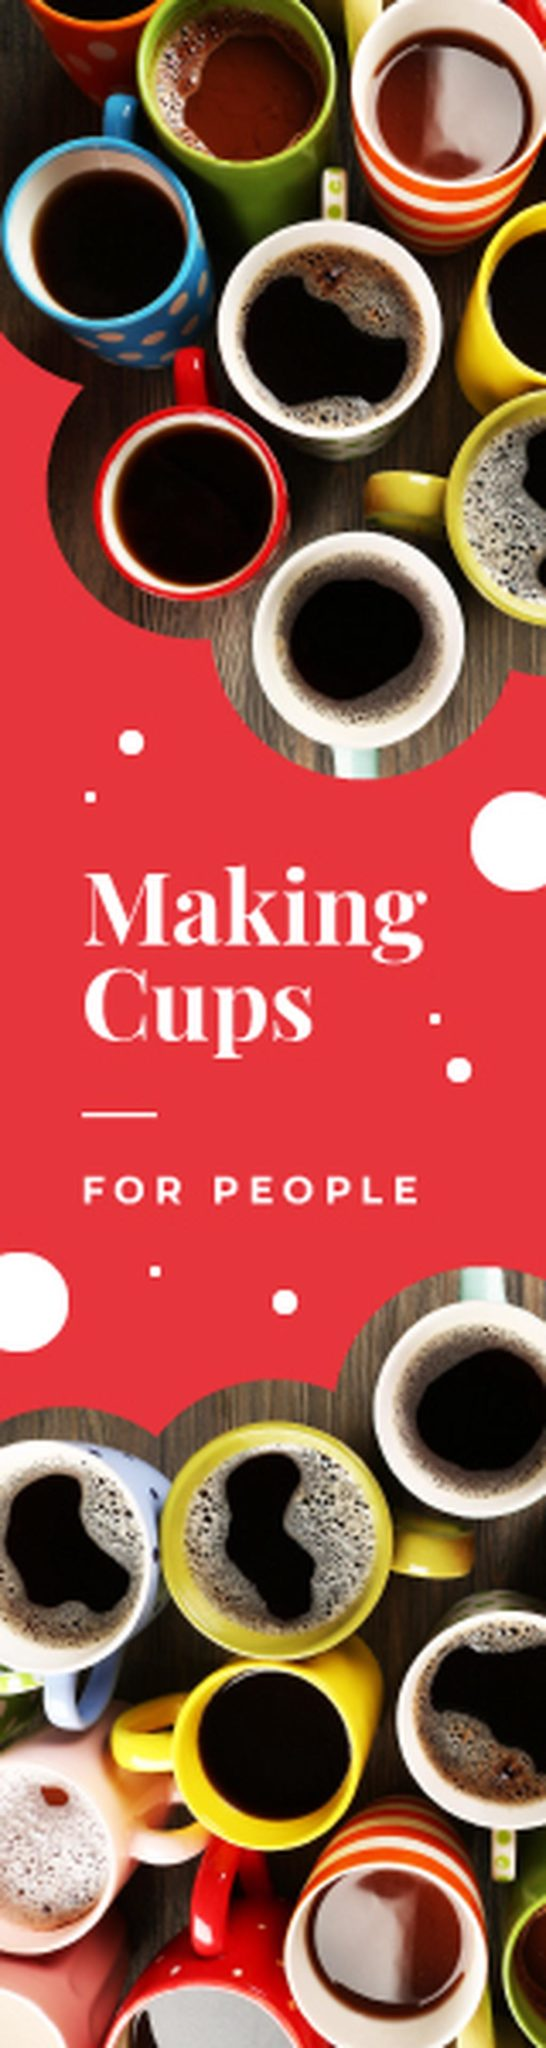 Cafe Promotion Cups with Hot Coffee